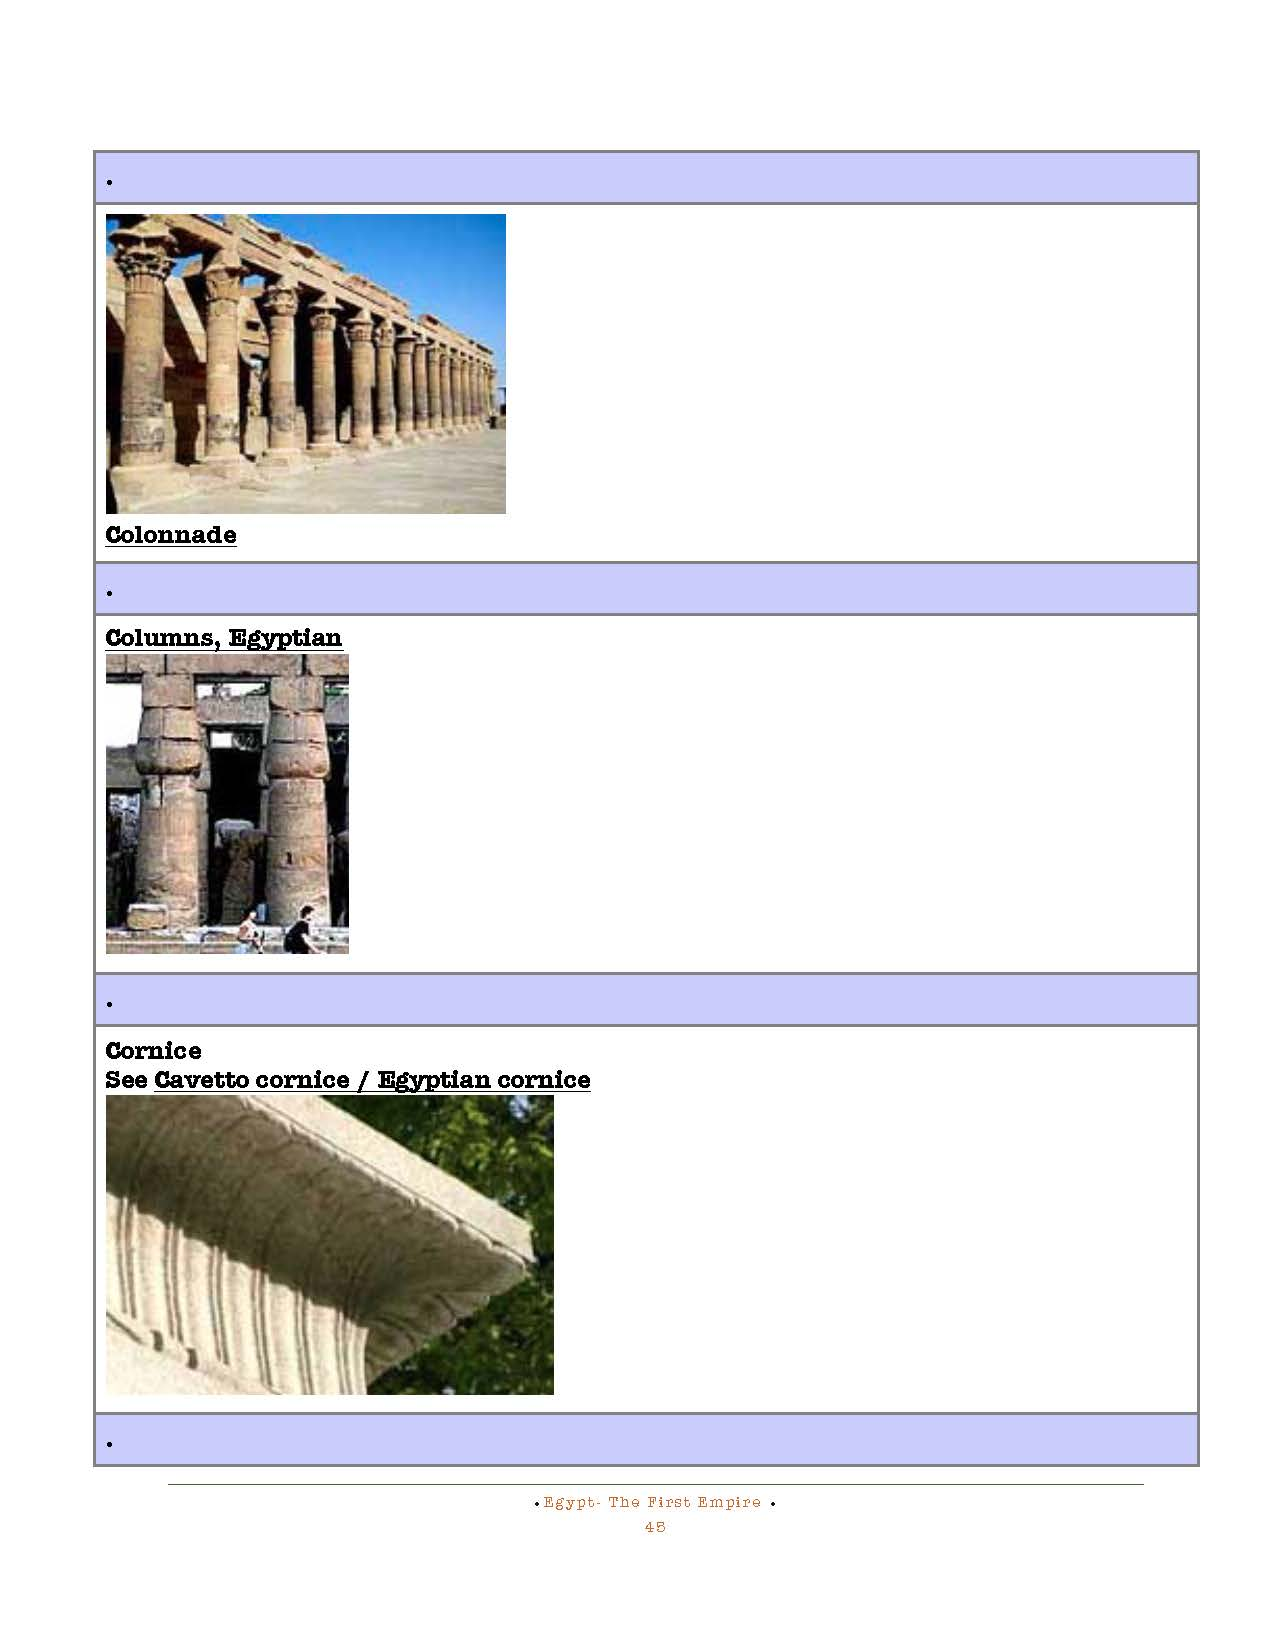 HOCE- Egypt  (First Empire) Notes_Page_045.jpg